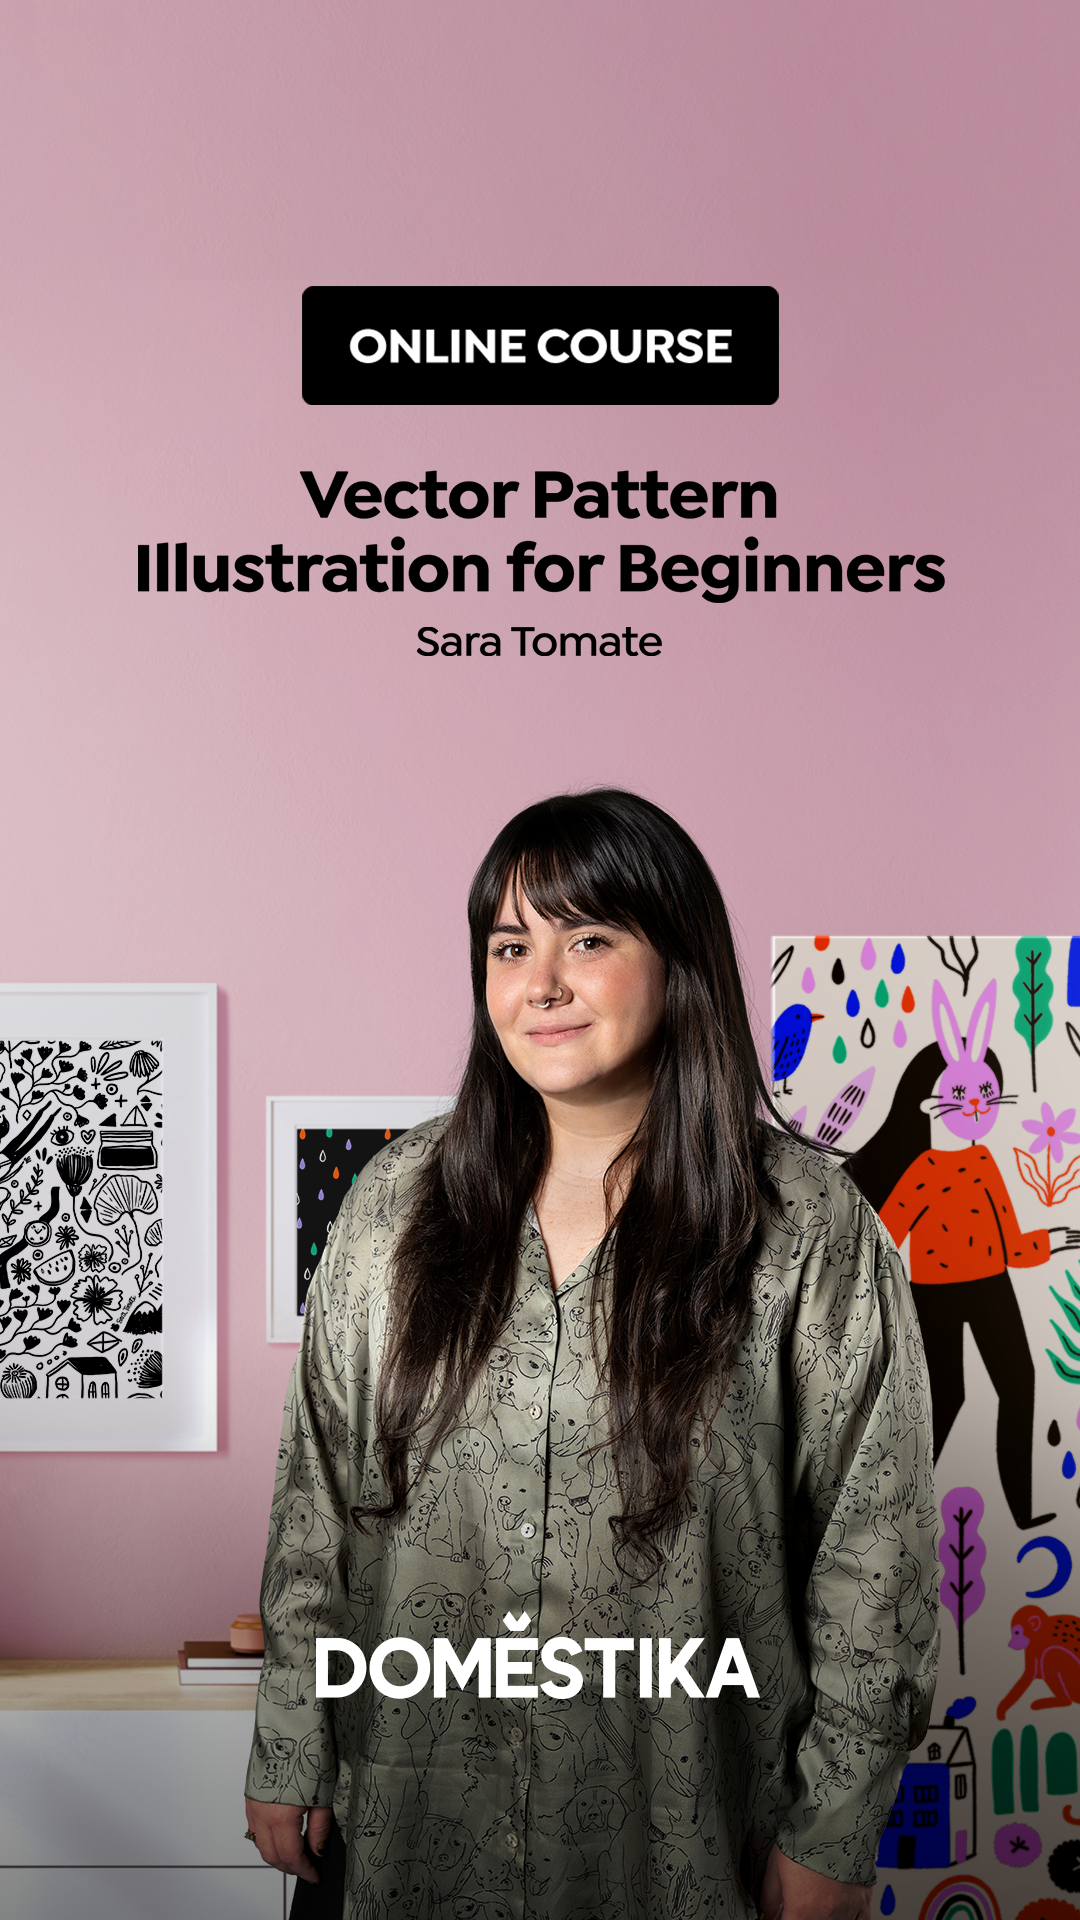 Vector Pattern Illustration for Beginners - Domestika Course